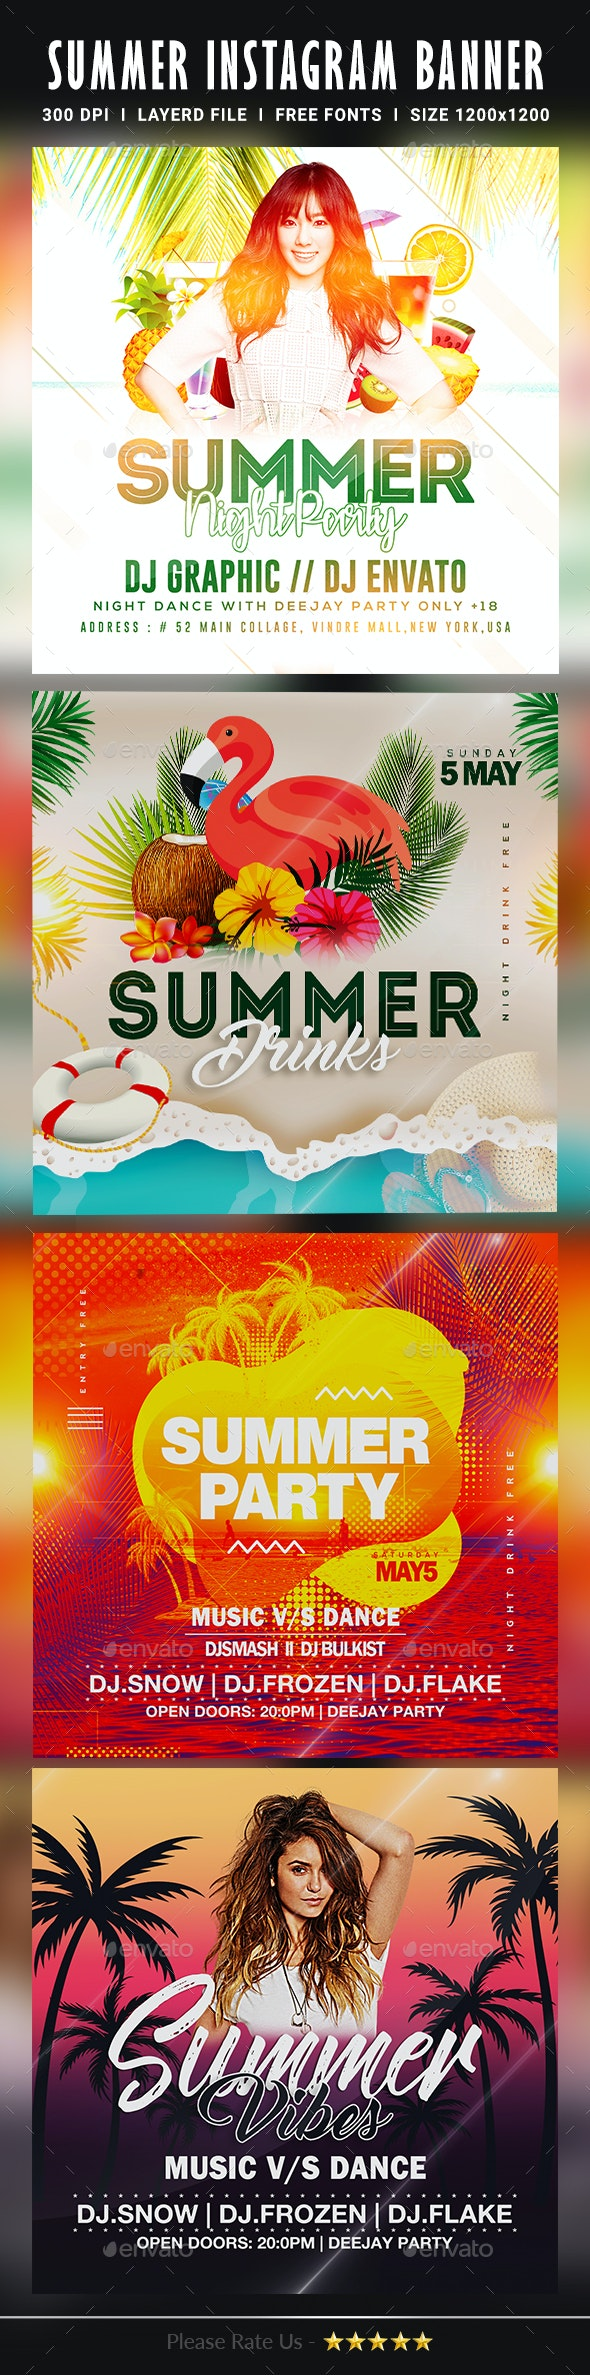 Summer Instagram Banners - Banners & Ads Web Elements